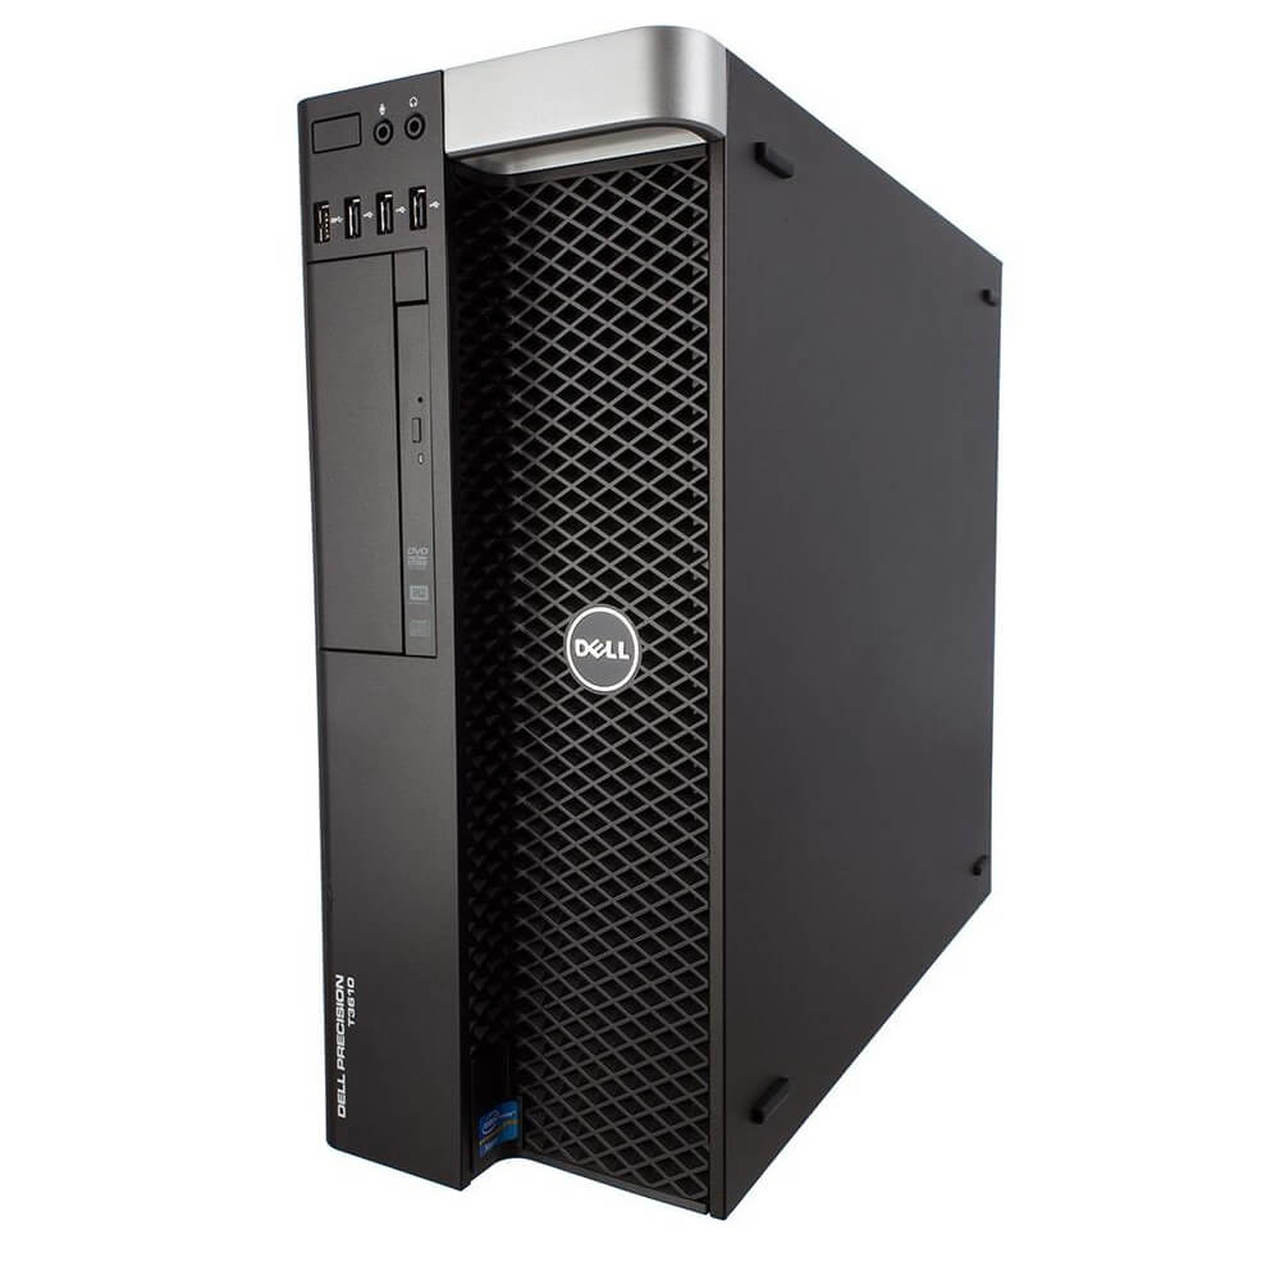 Dell Precision T3610 Tower Quad Core Intel Xeon 3.0Ghz, 8GB